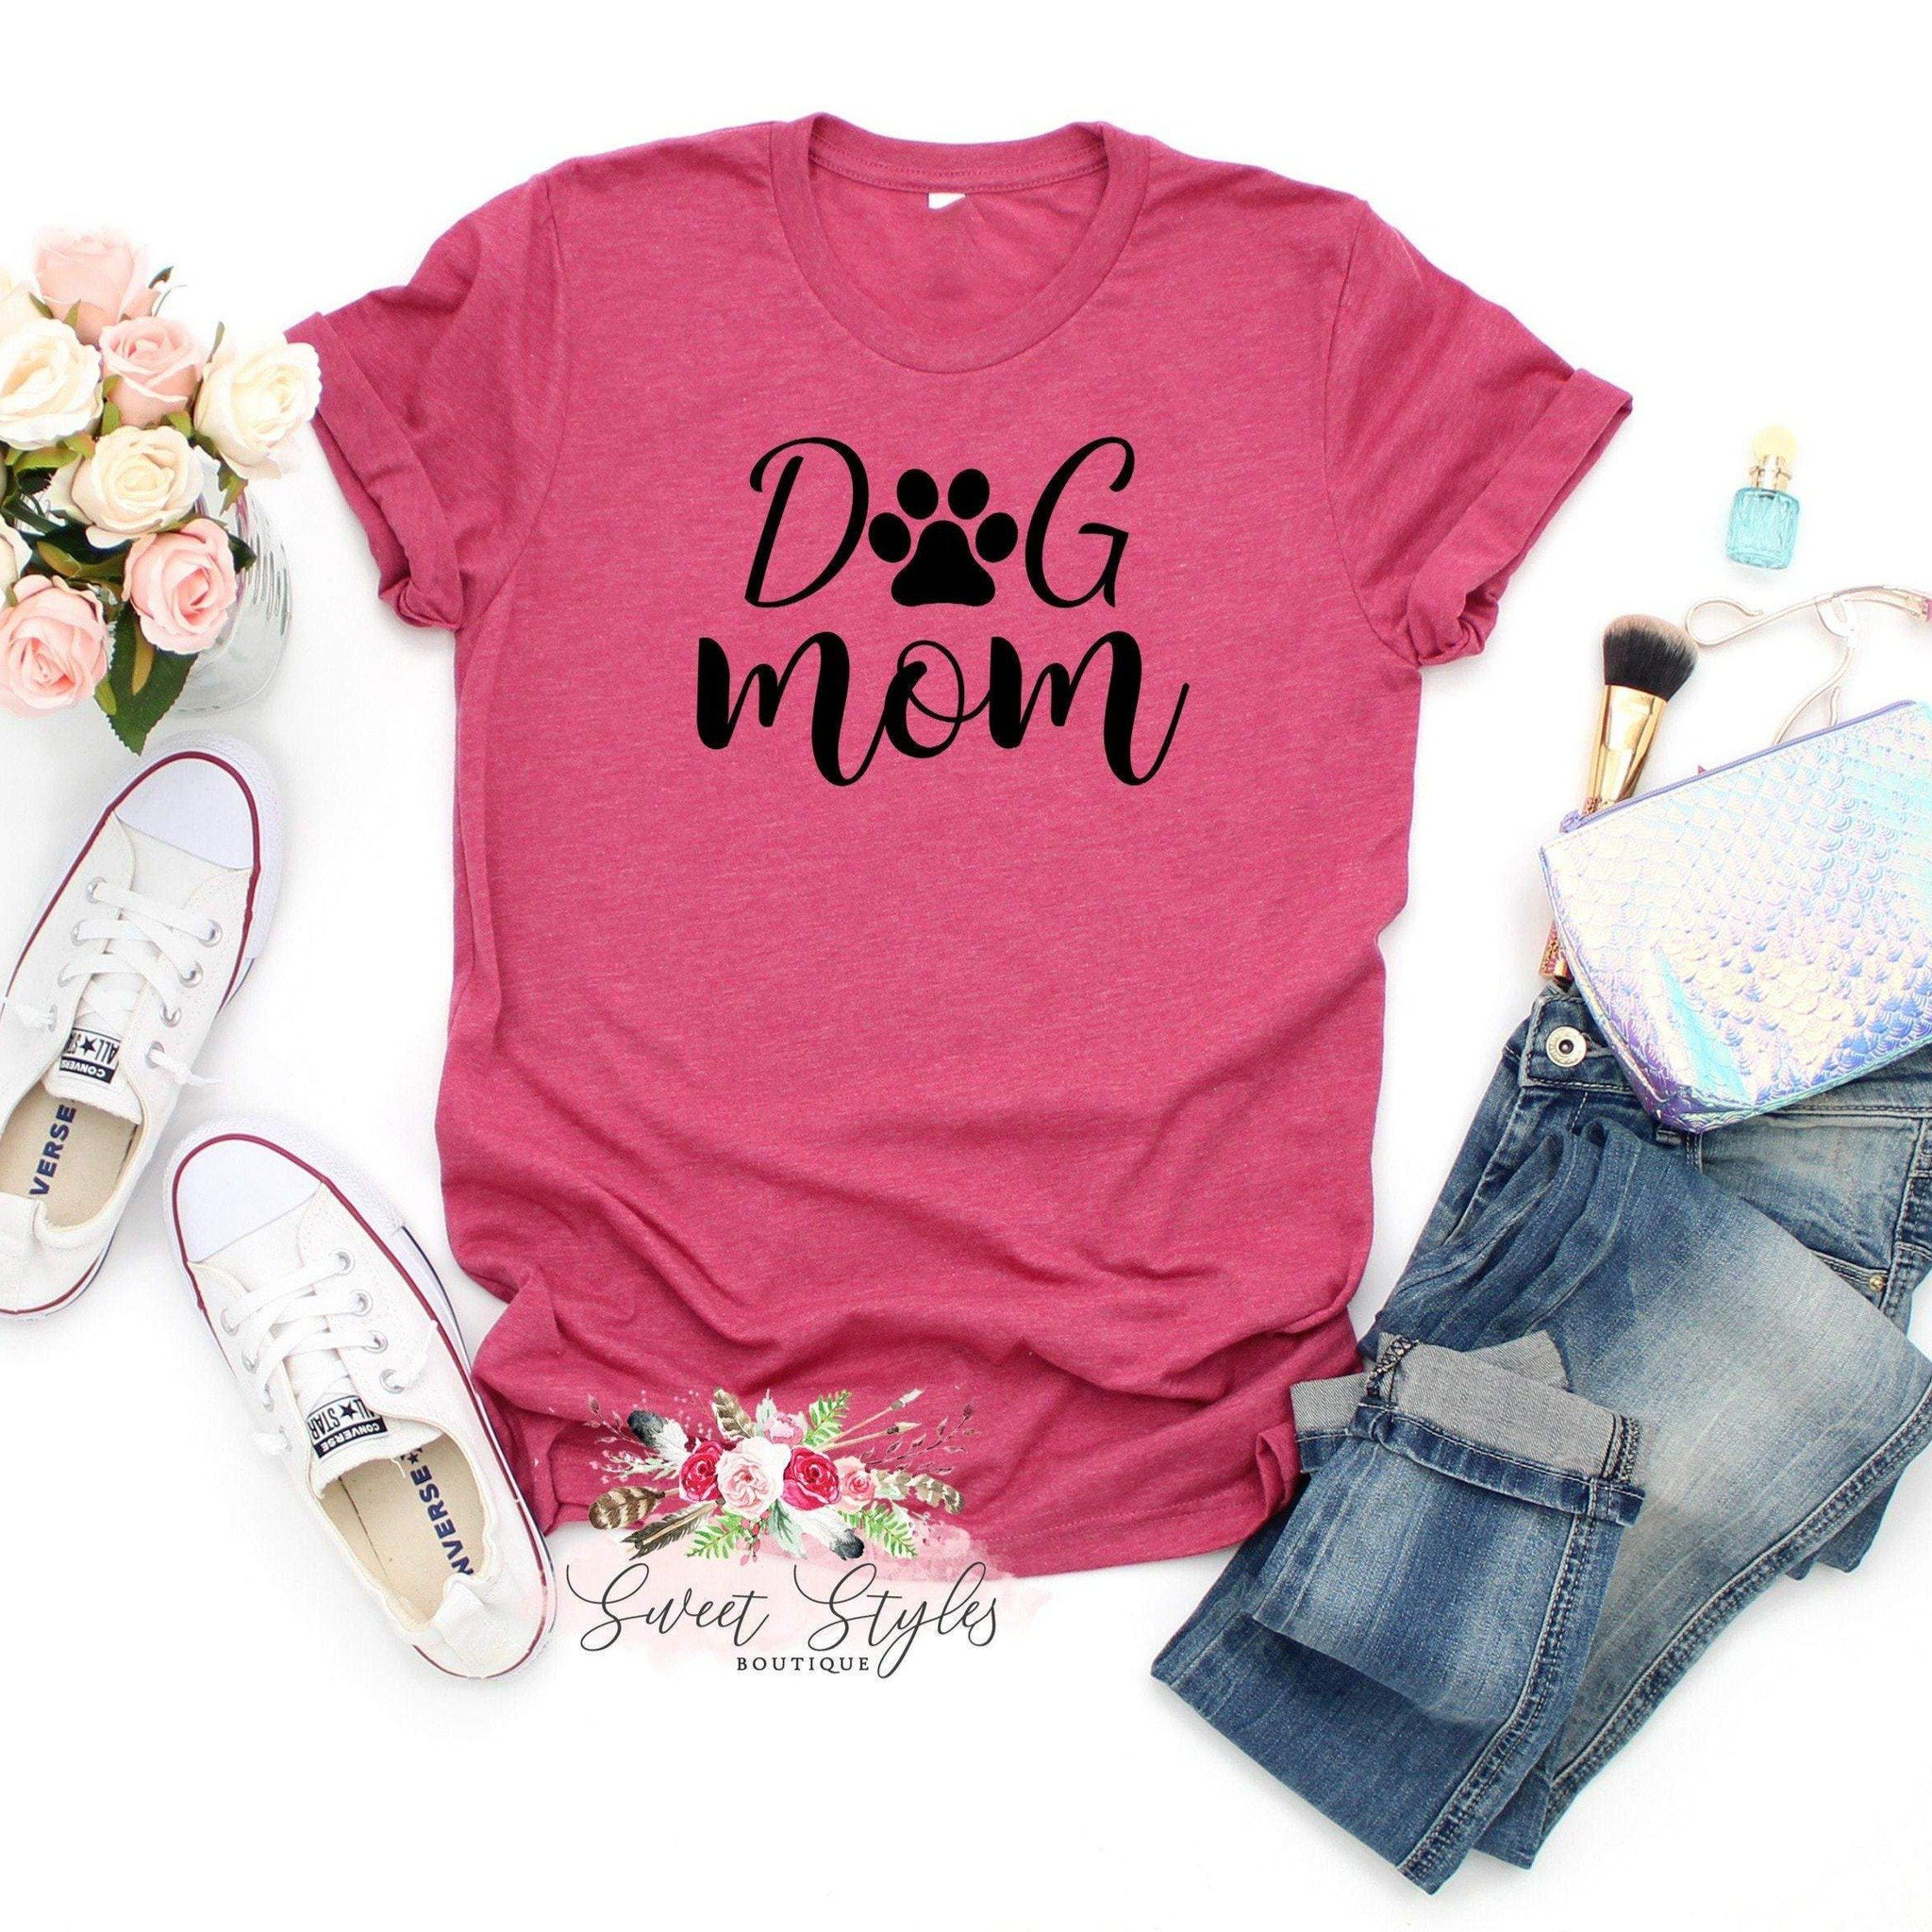 Dog mom T-shirt-Sweet Styles boutique